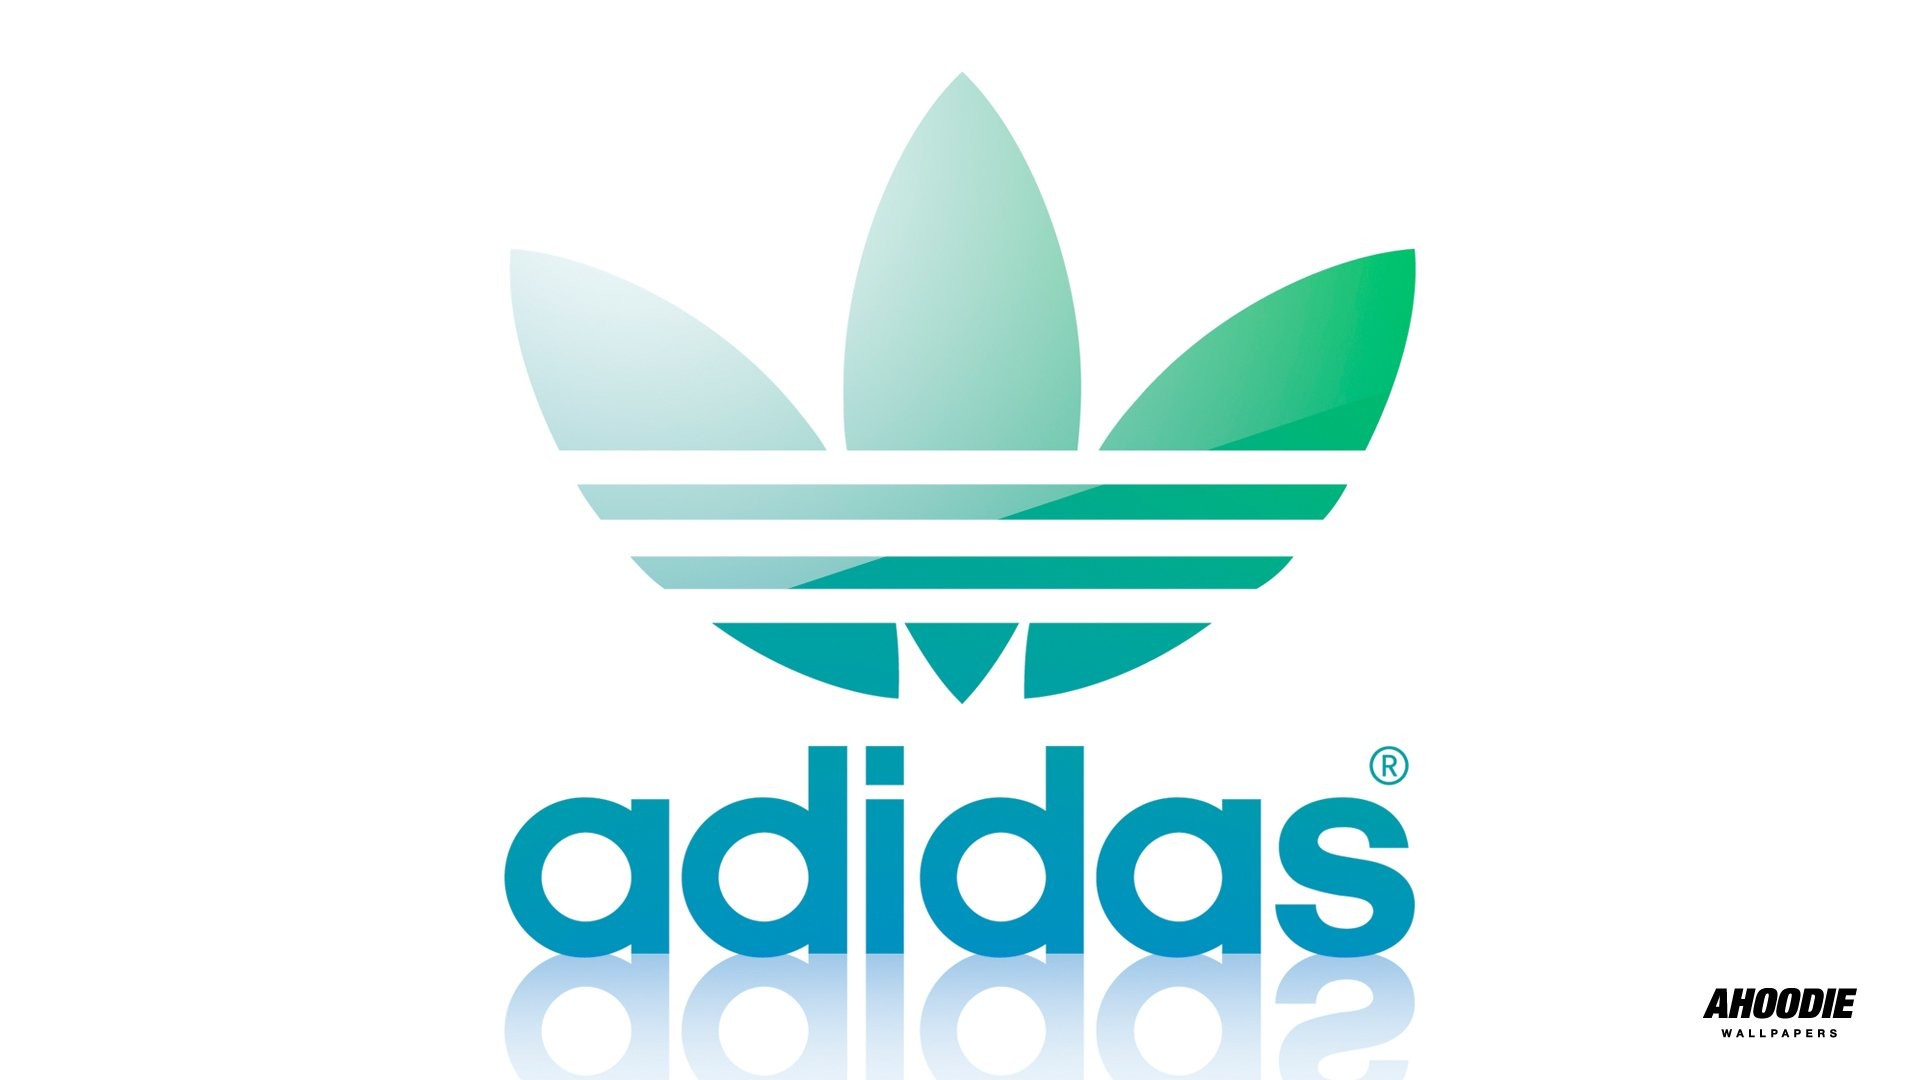 1920x1080 Adidas Originals Logo 435714